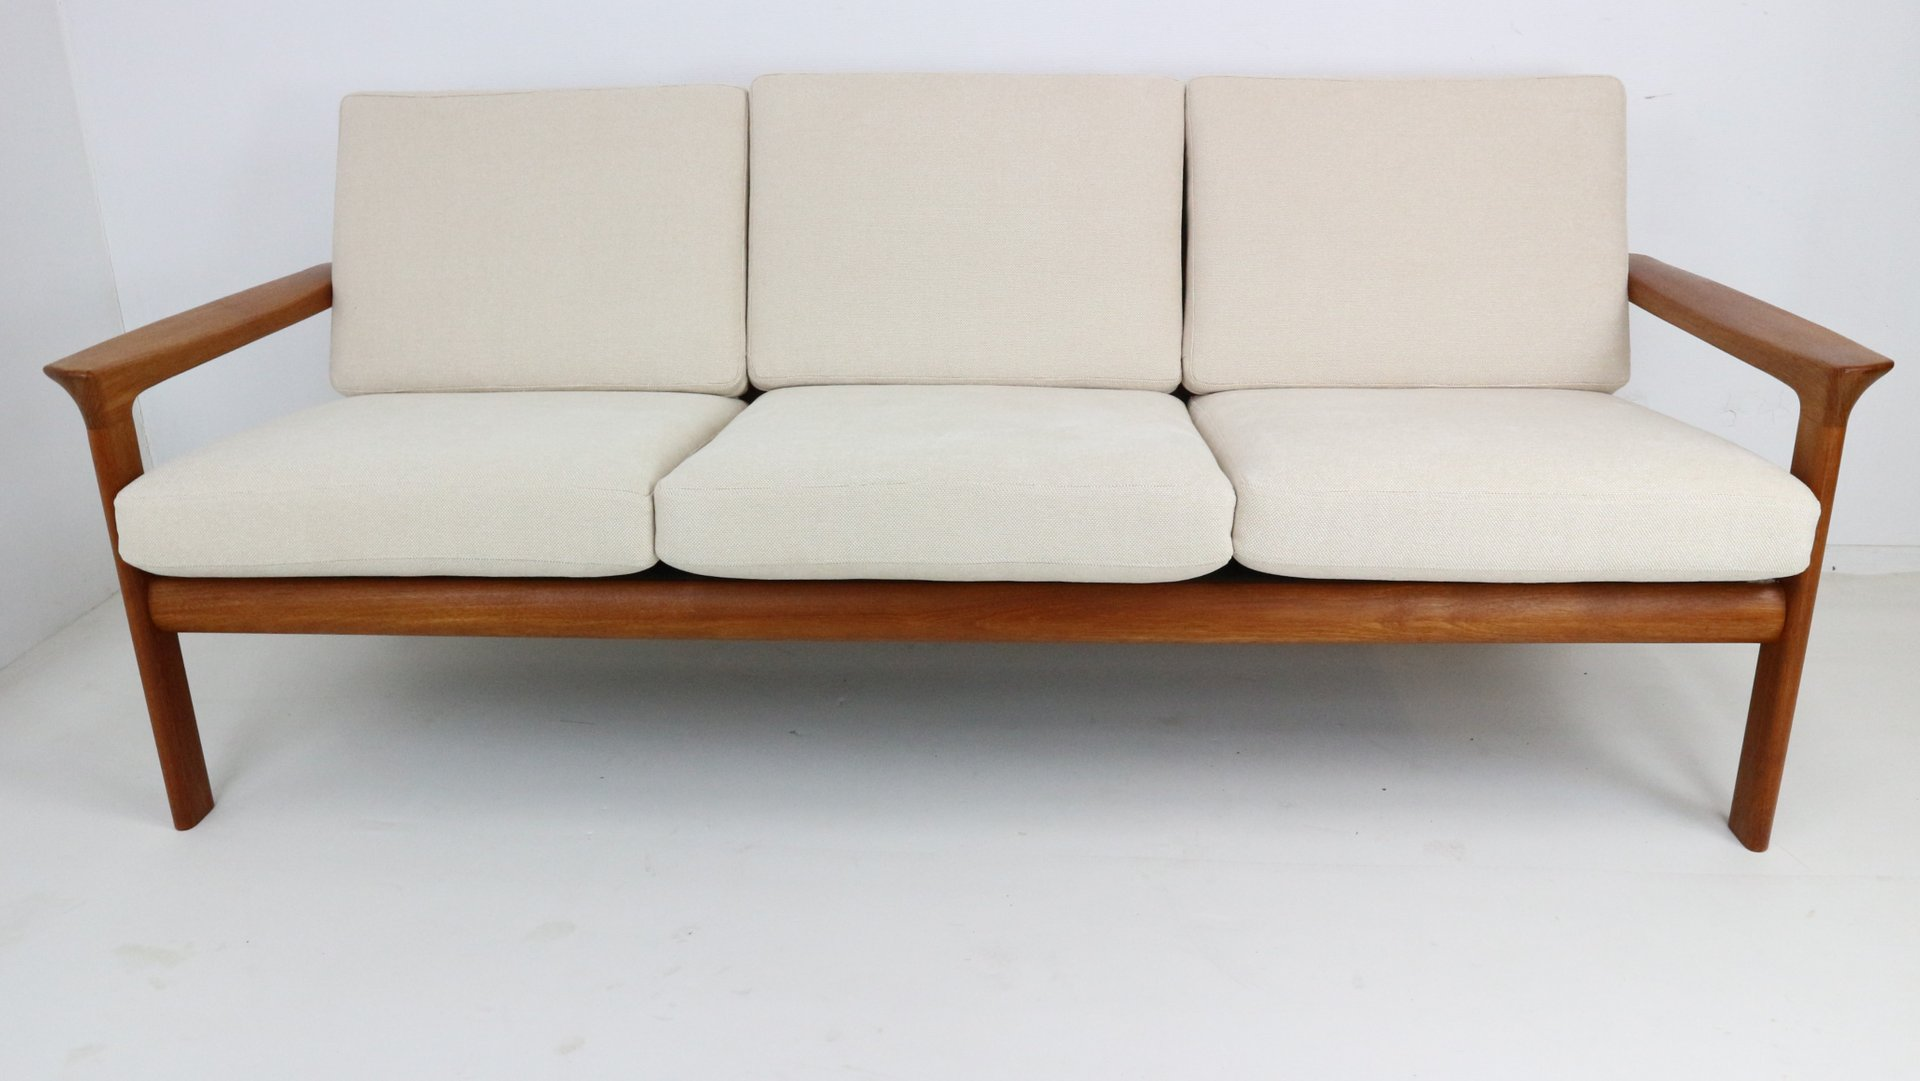 d nisches 3 sitzer teak sofa von sven ellekaer f r komfort 1960er bei pamono kaufen. Black Bedroom Furniture Sets. Home Design Ideas